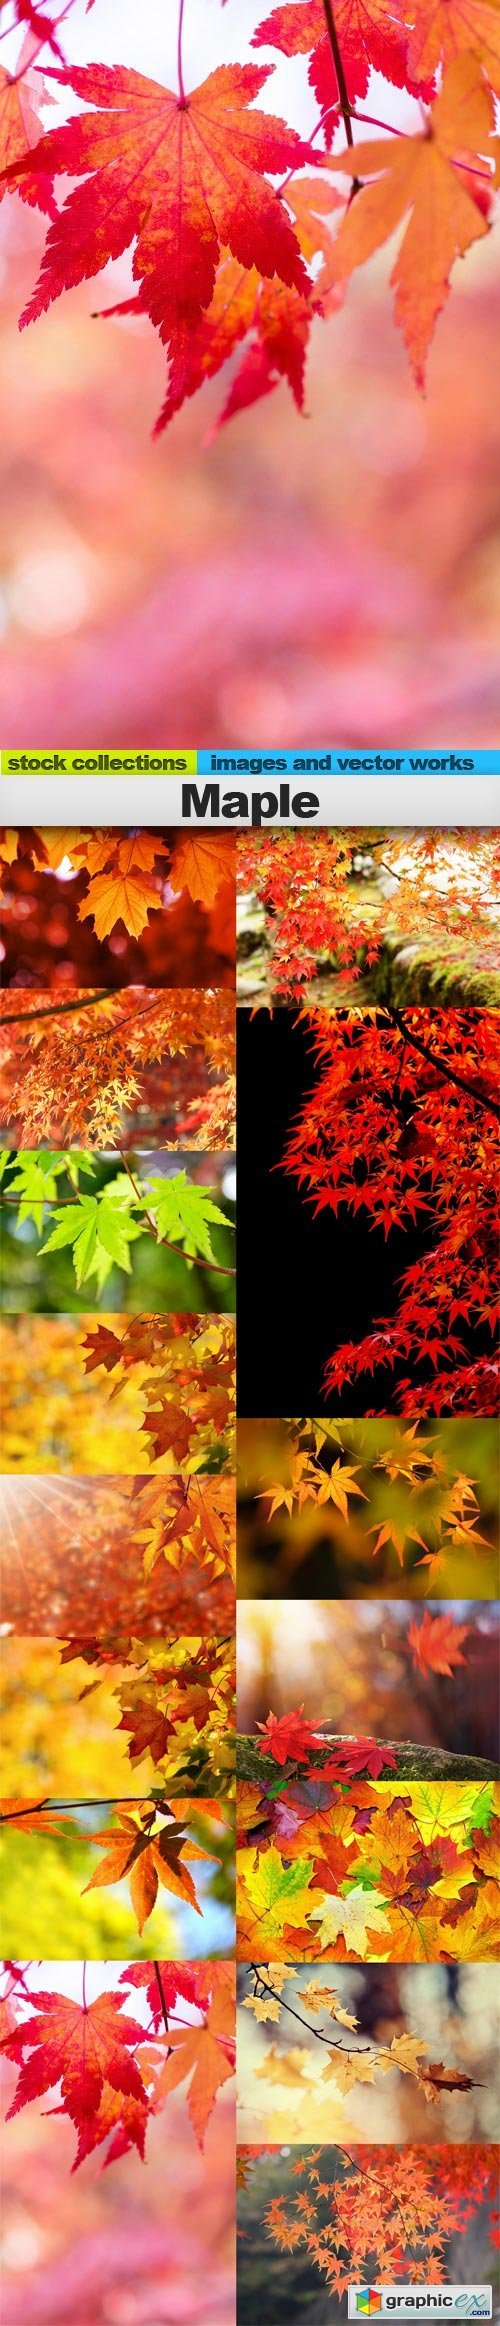 Maple, 15 x UHQ JPEG